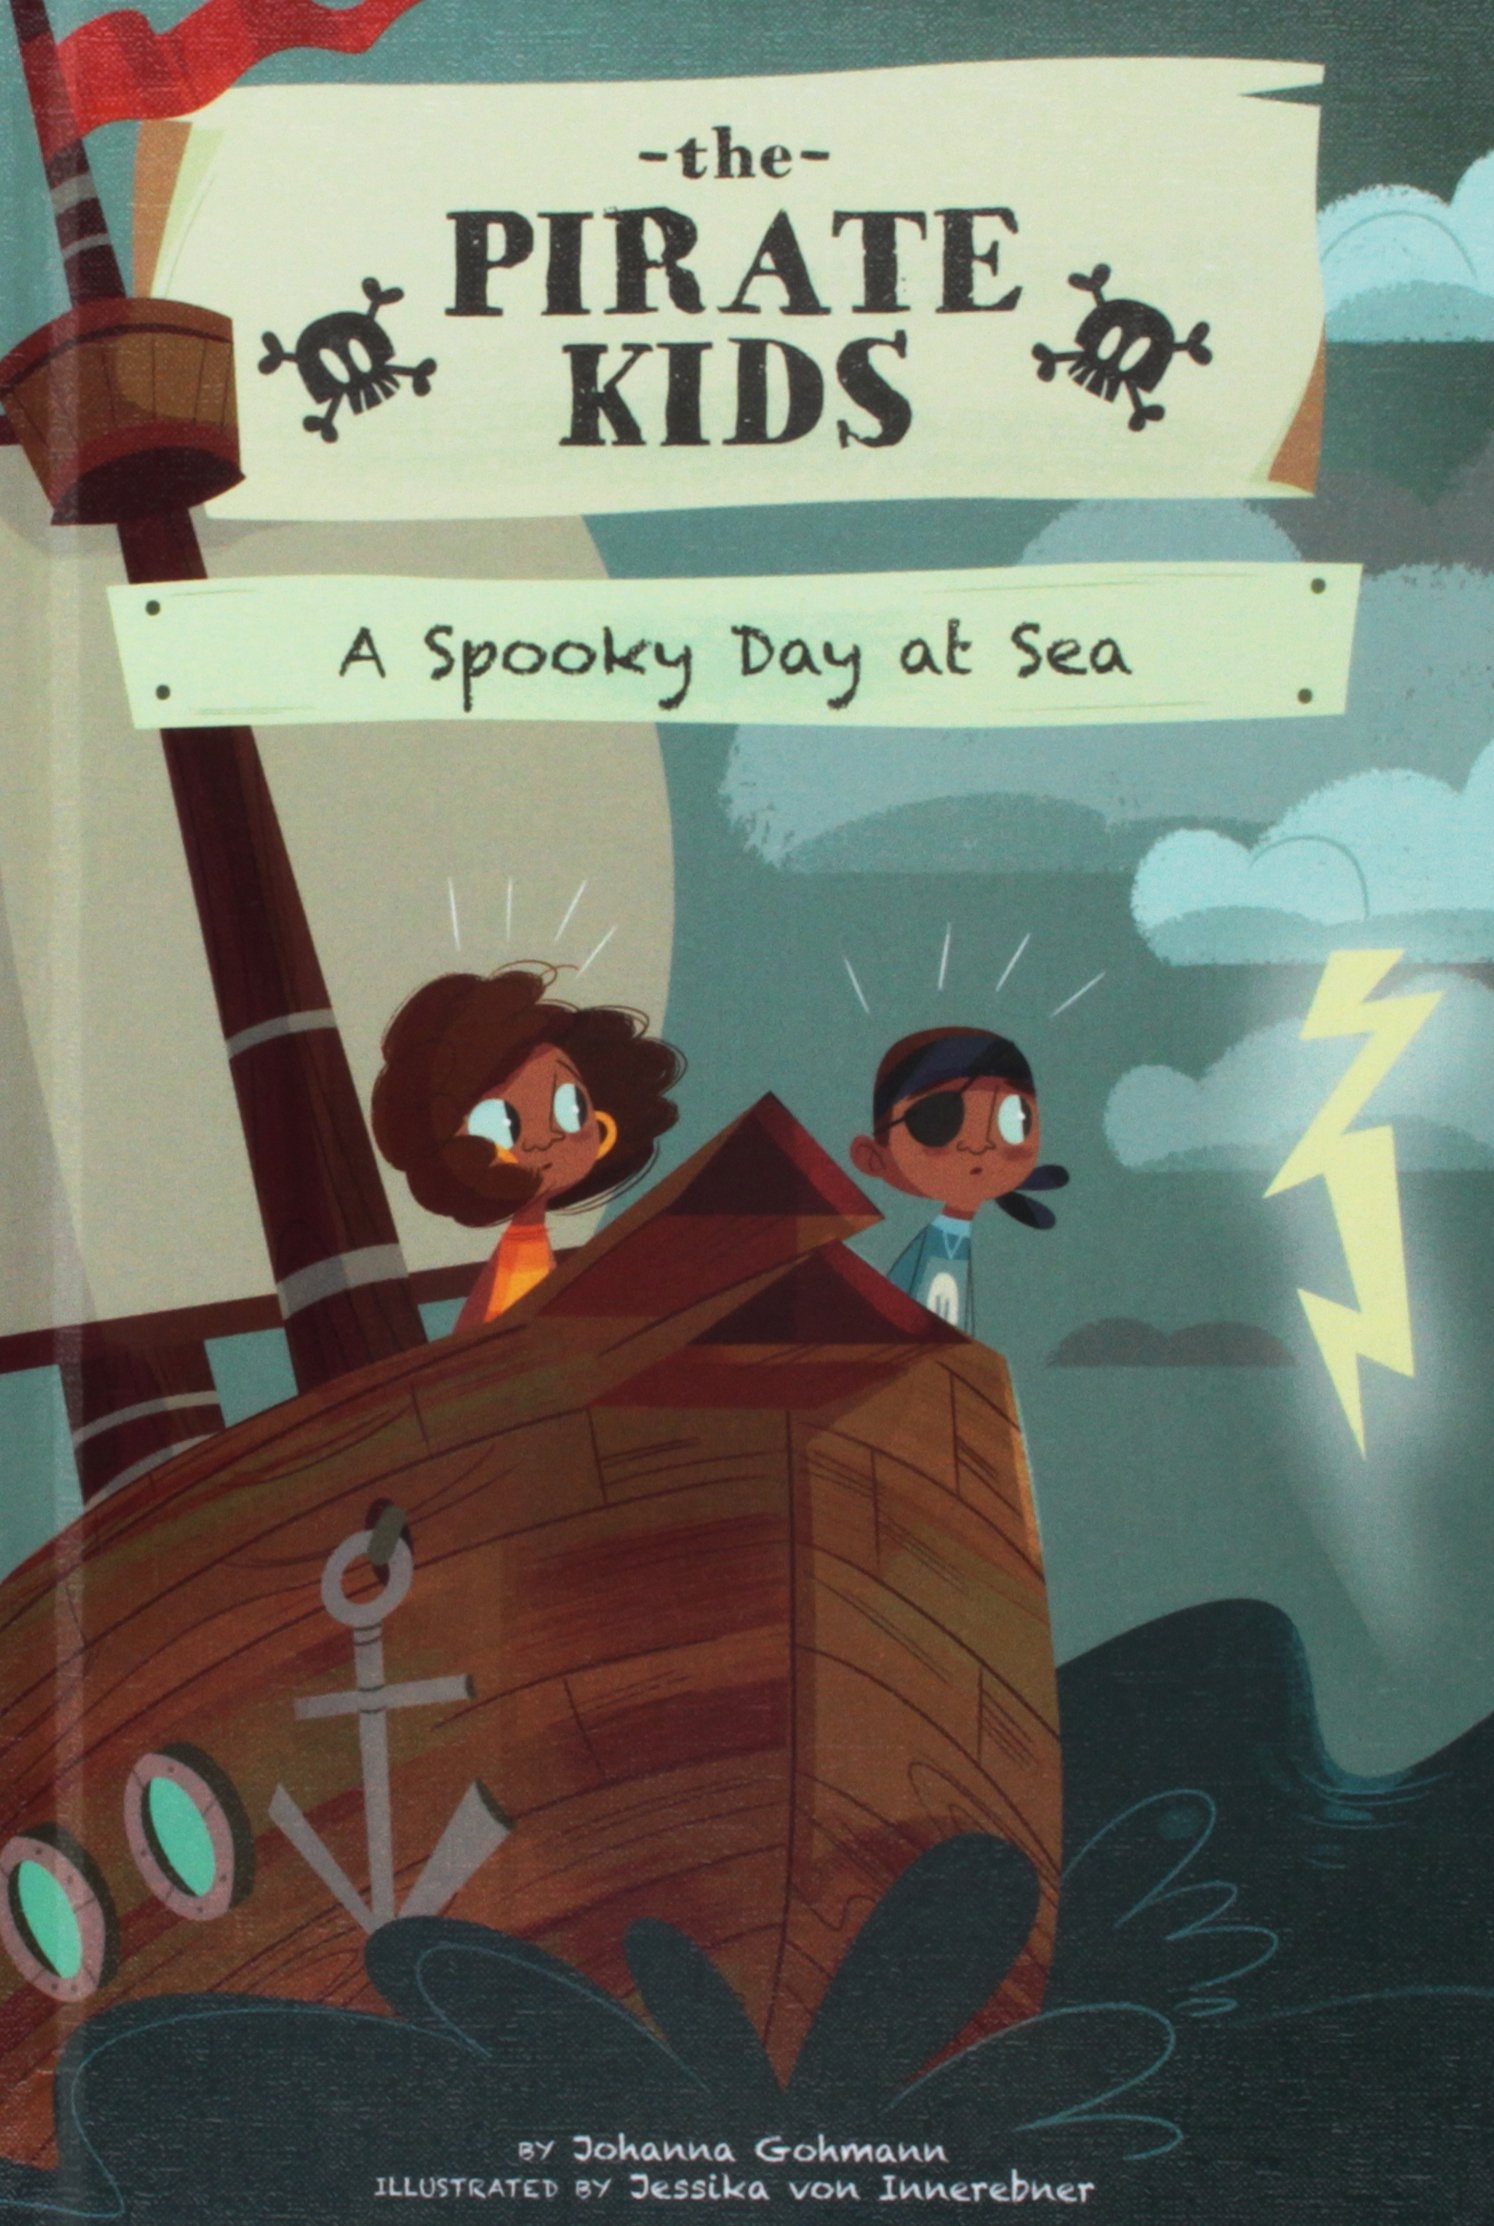 The Pirate Kids A Spooky Day at Sea.jpg